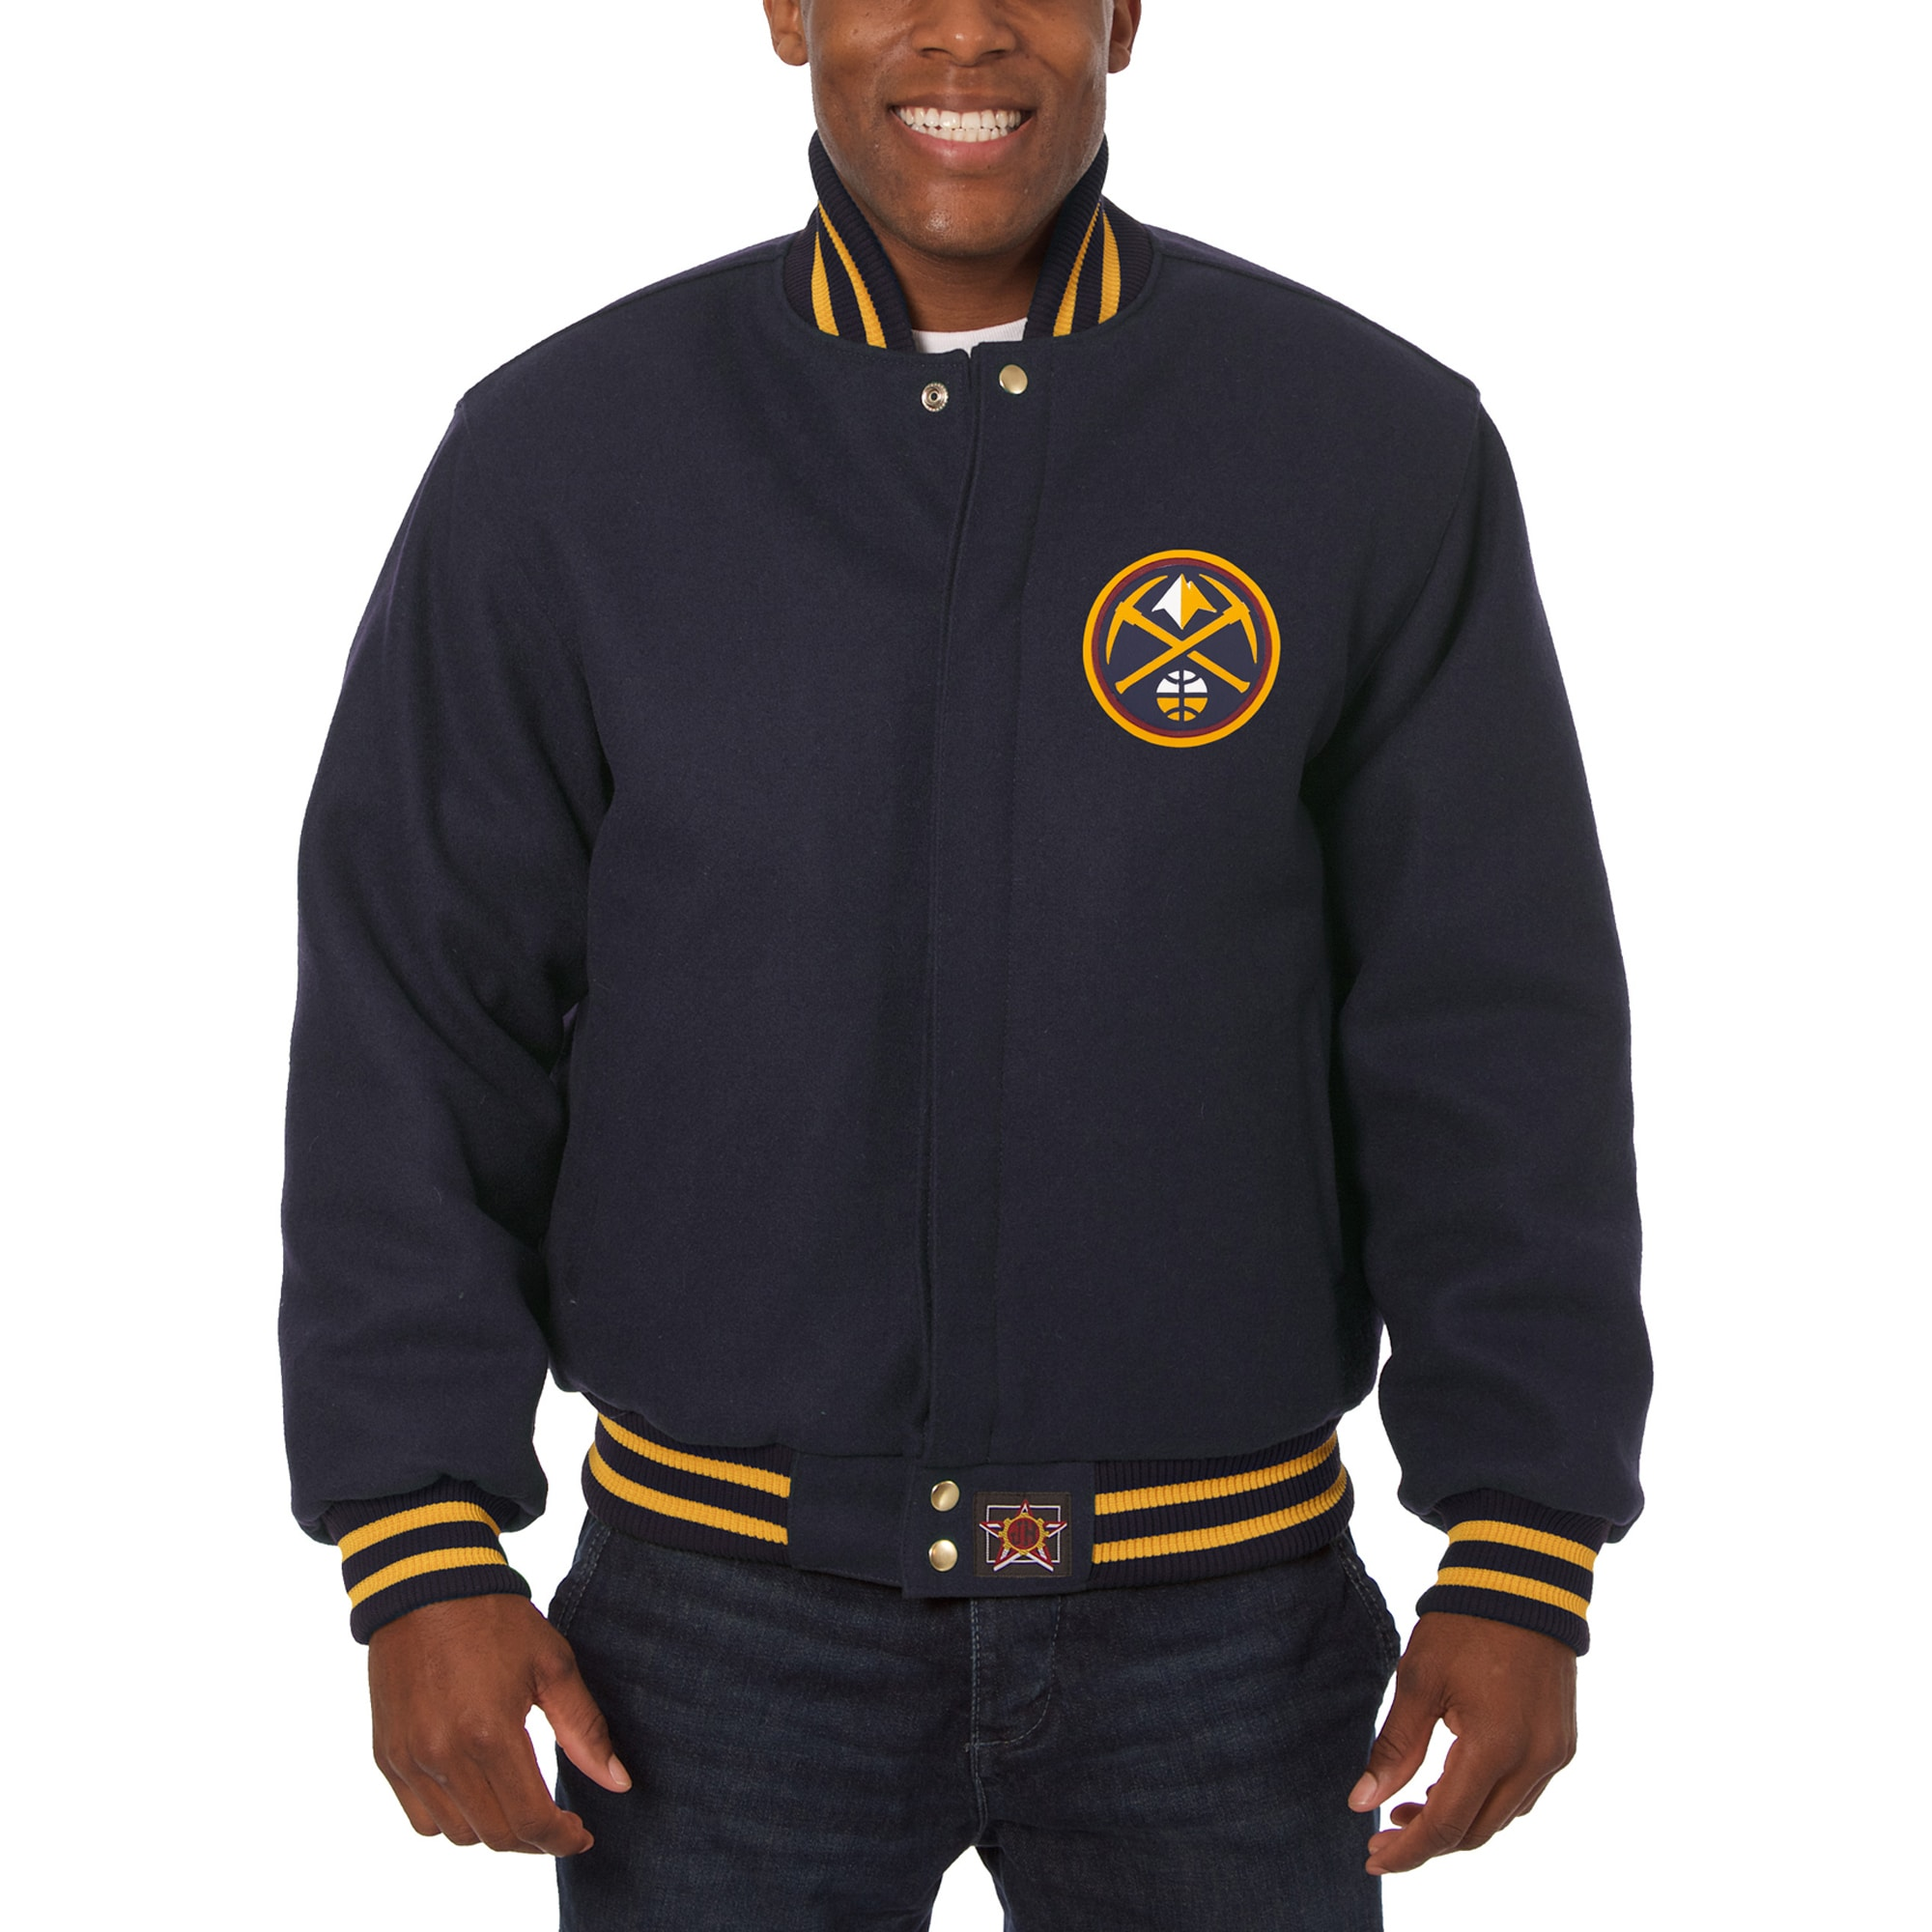 Denver Nuggets JH Design Big & Tall All Wool Jacket with Leather Logo - Navy